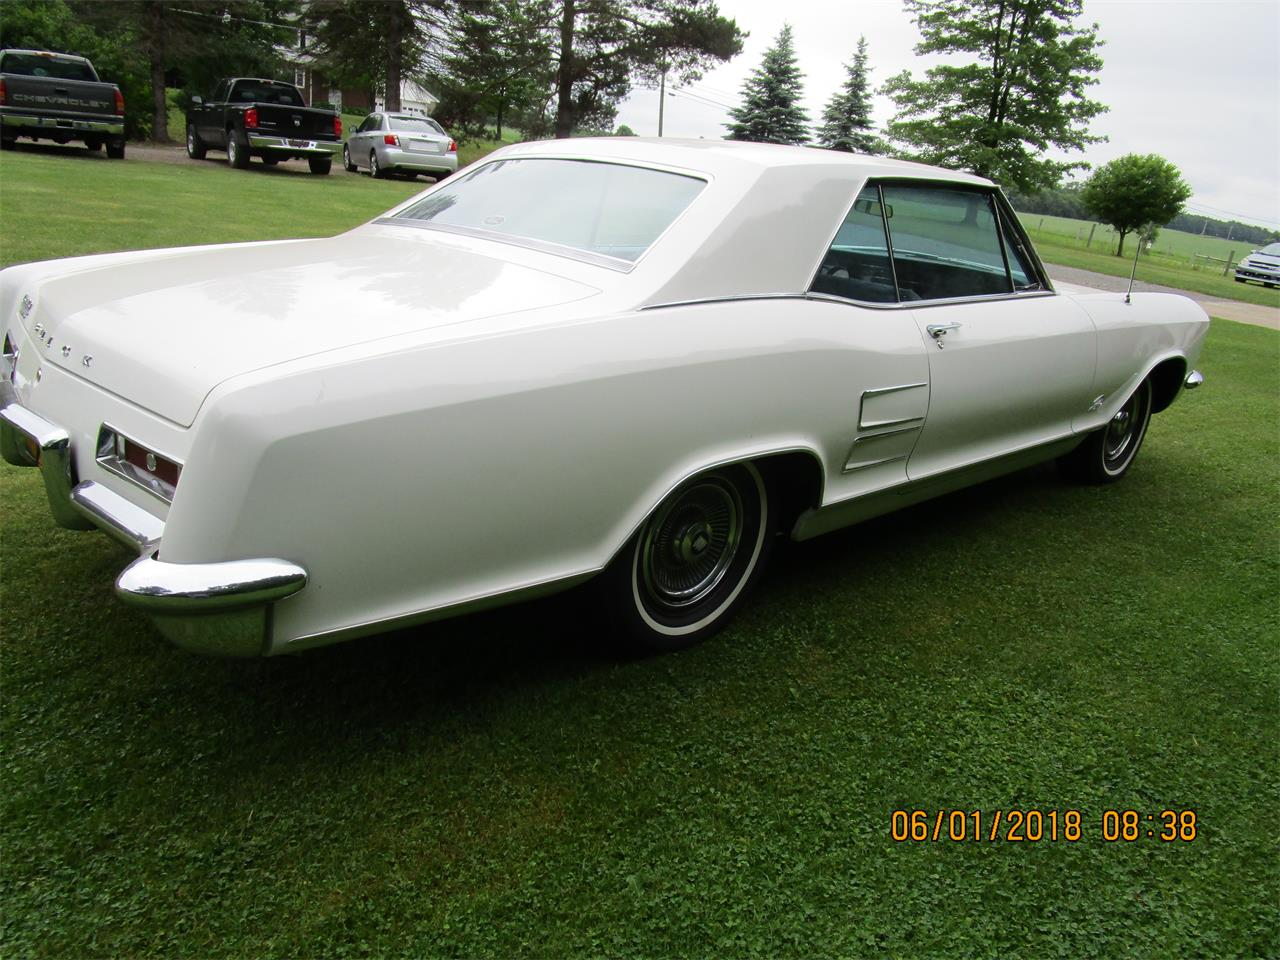 Large Picture of Classic 1963 Riviera located in MILL HALL Pennsylvania Auction Vehicle - NJ7B